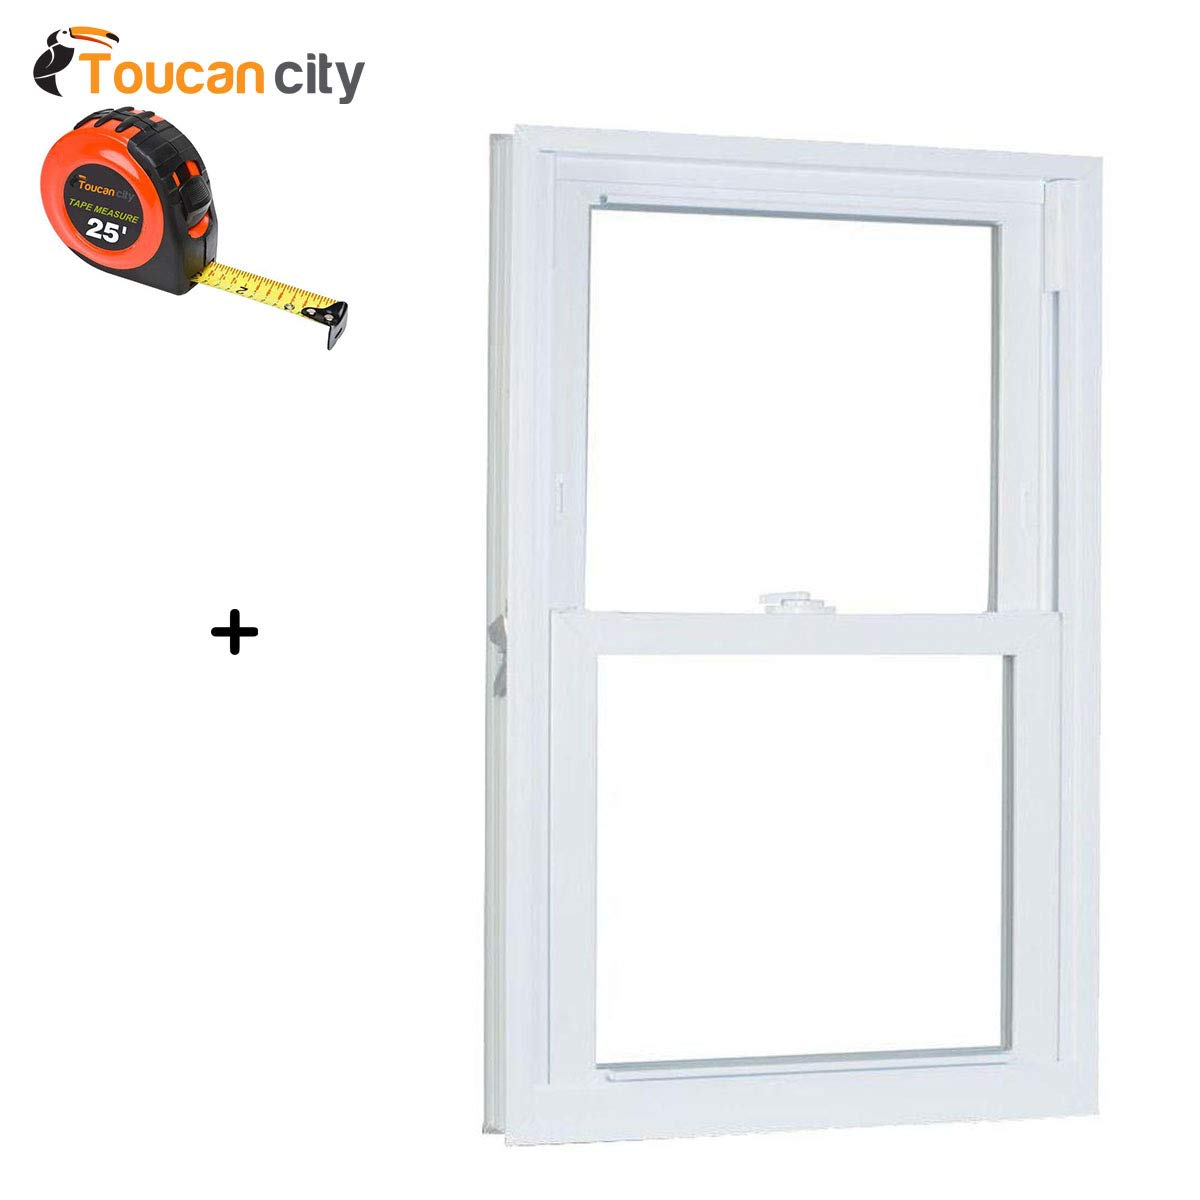 Toucan City Tape Measure and American Craftsman 23.75 in. x 40 in. 70 Series Pro Double Hung White Vinyl Window 2438786